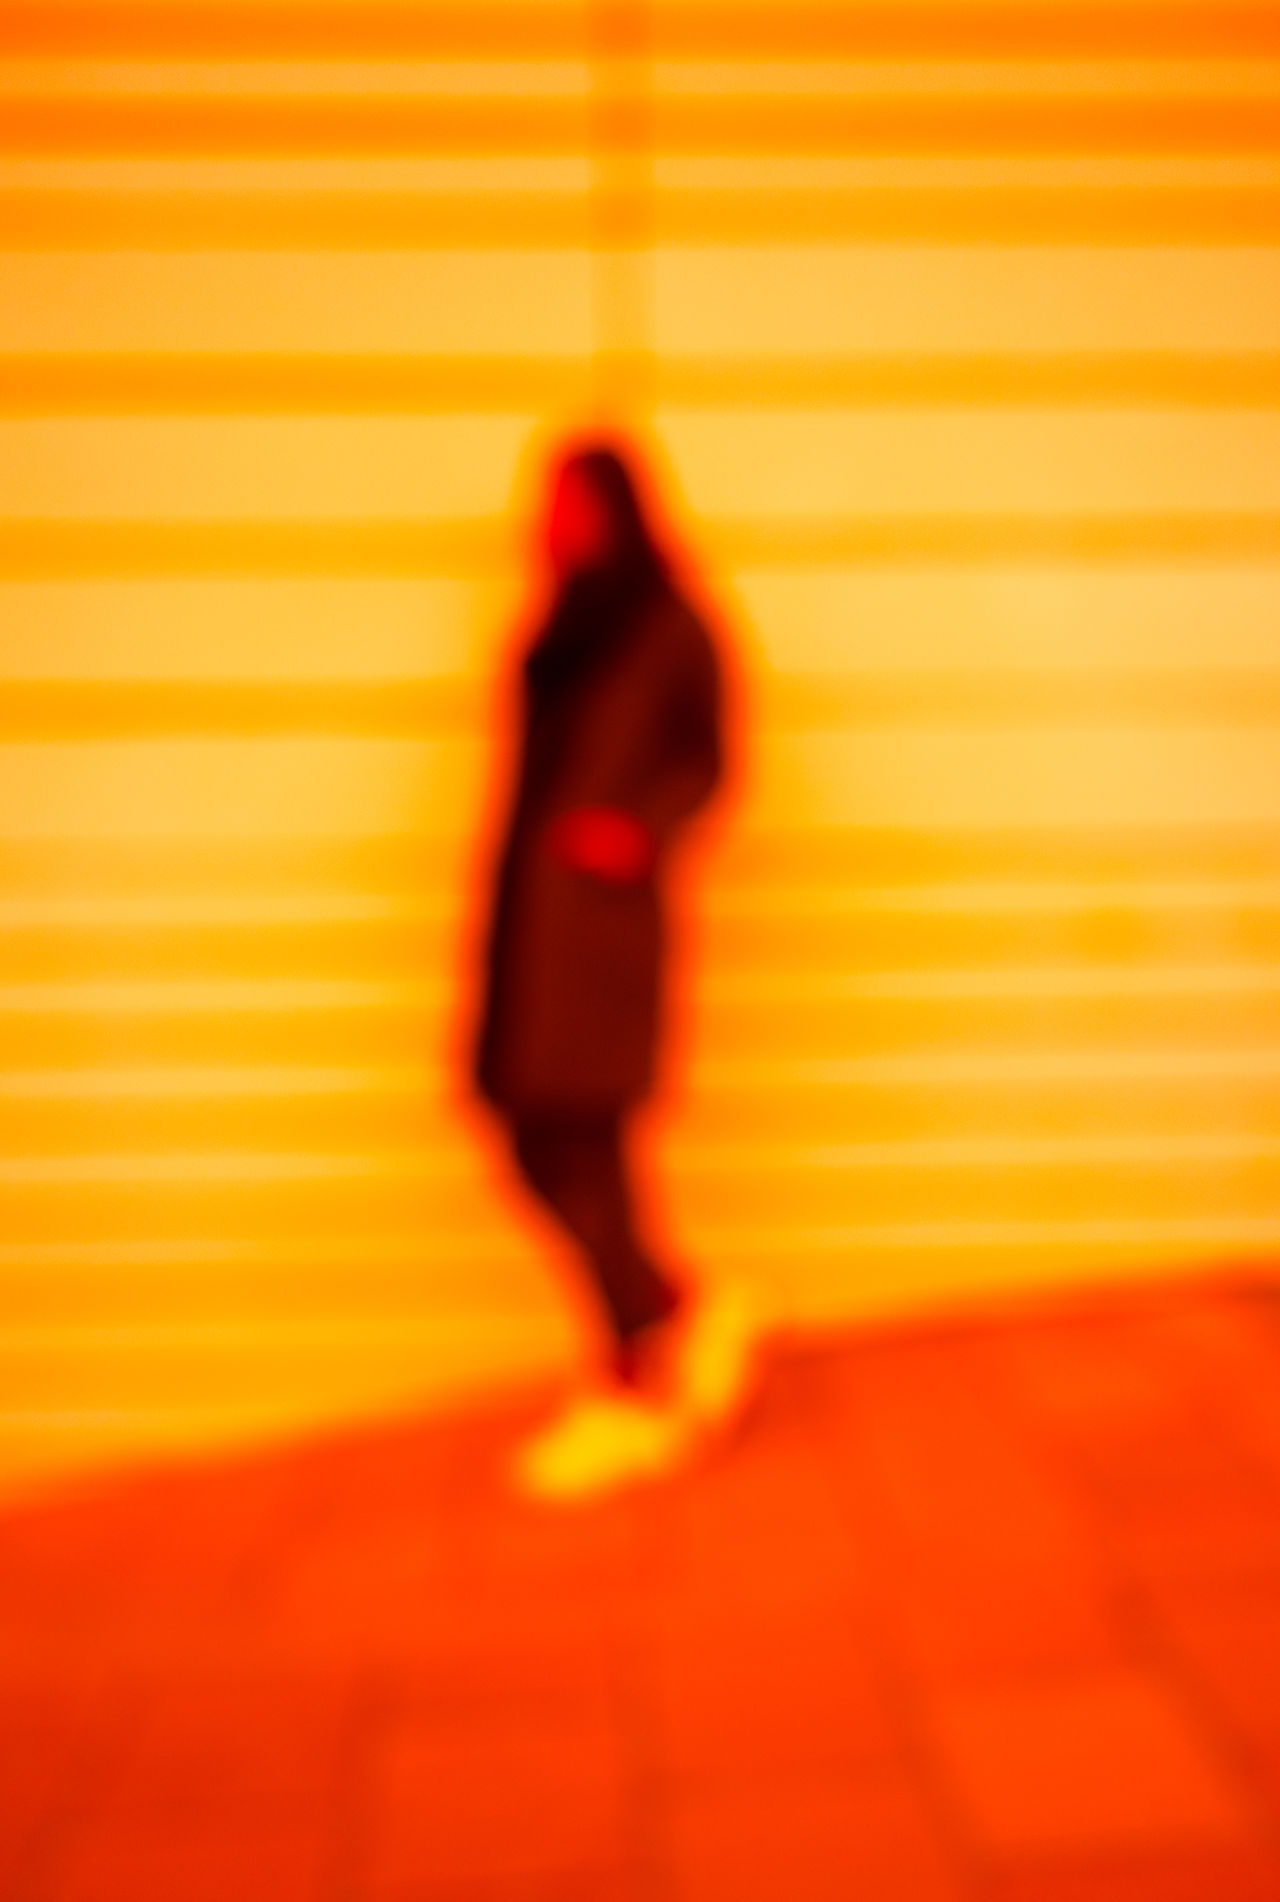 BLURRED SITUATION Adult Adults Only Blurred Motion Full Length One Person Pattern Red Standing Walking